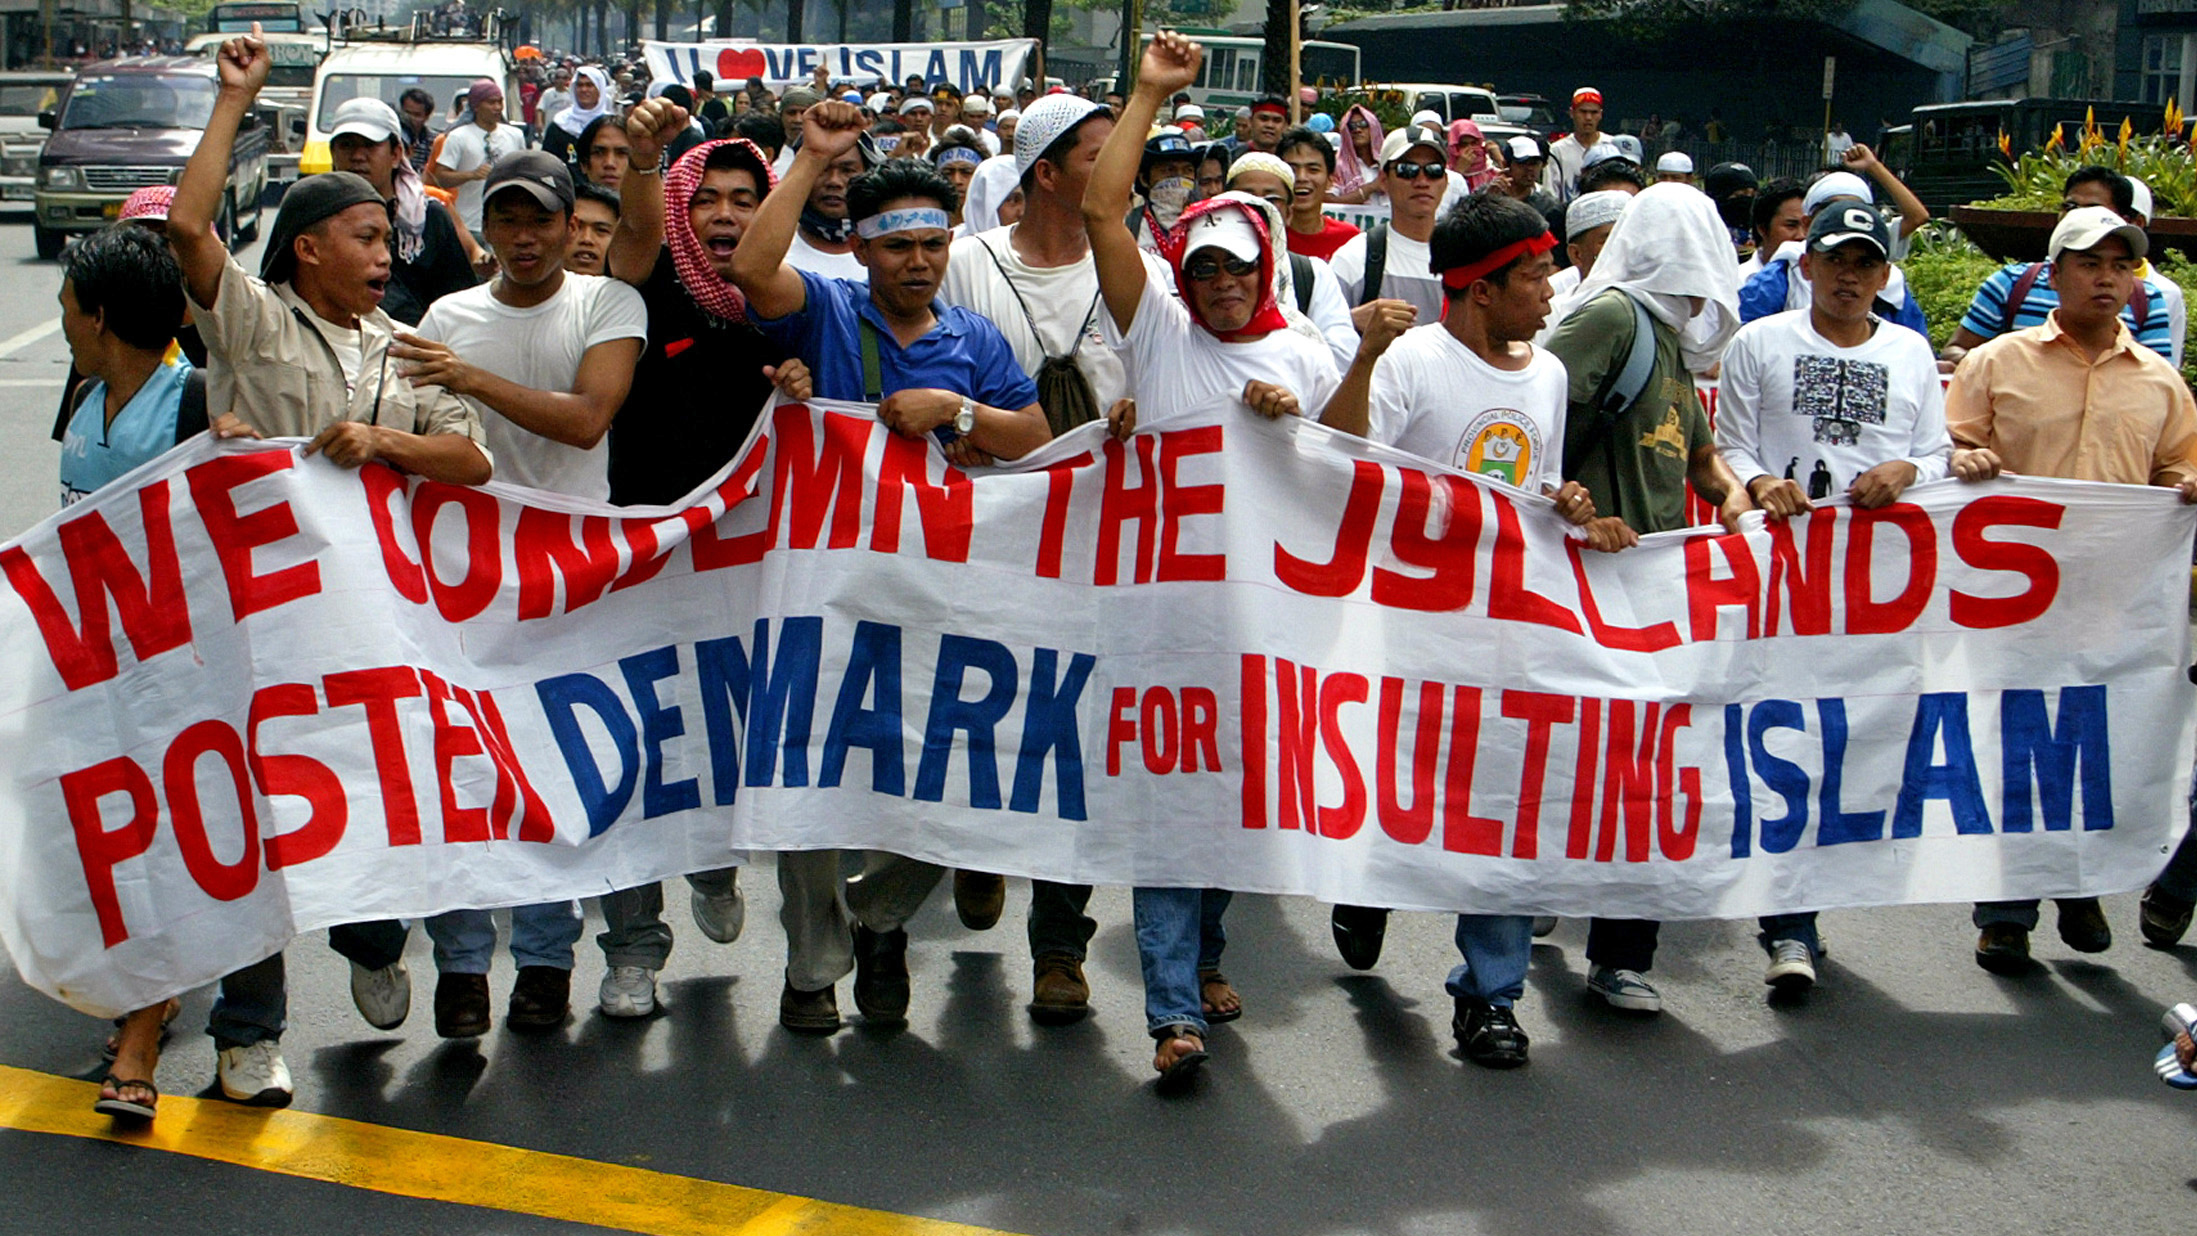 Filipino Muslims hold a banner during a rally outside the Danish embassy in Manila's Makati financial district February 15, 2006. The protesters were demonstrating against cartoons depicting the Prophet Mohammad that were published by a Danish newspaper.